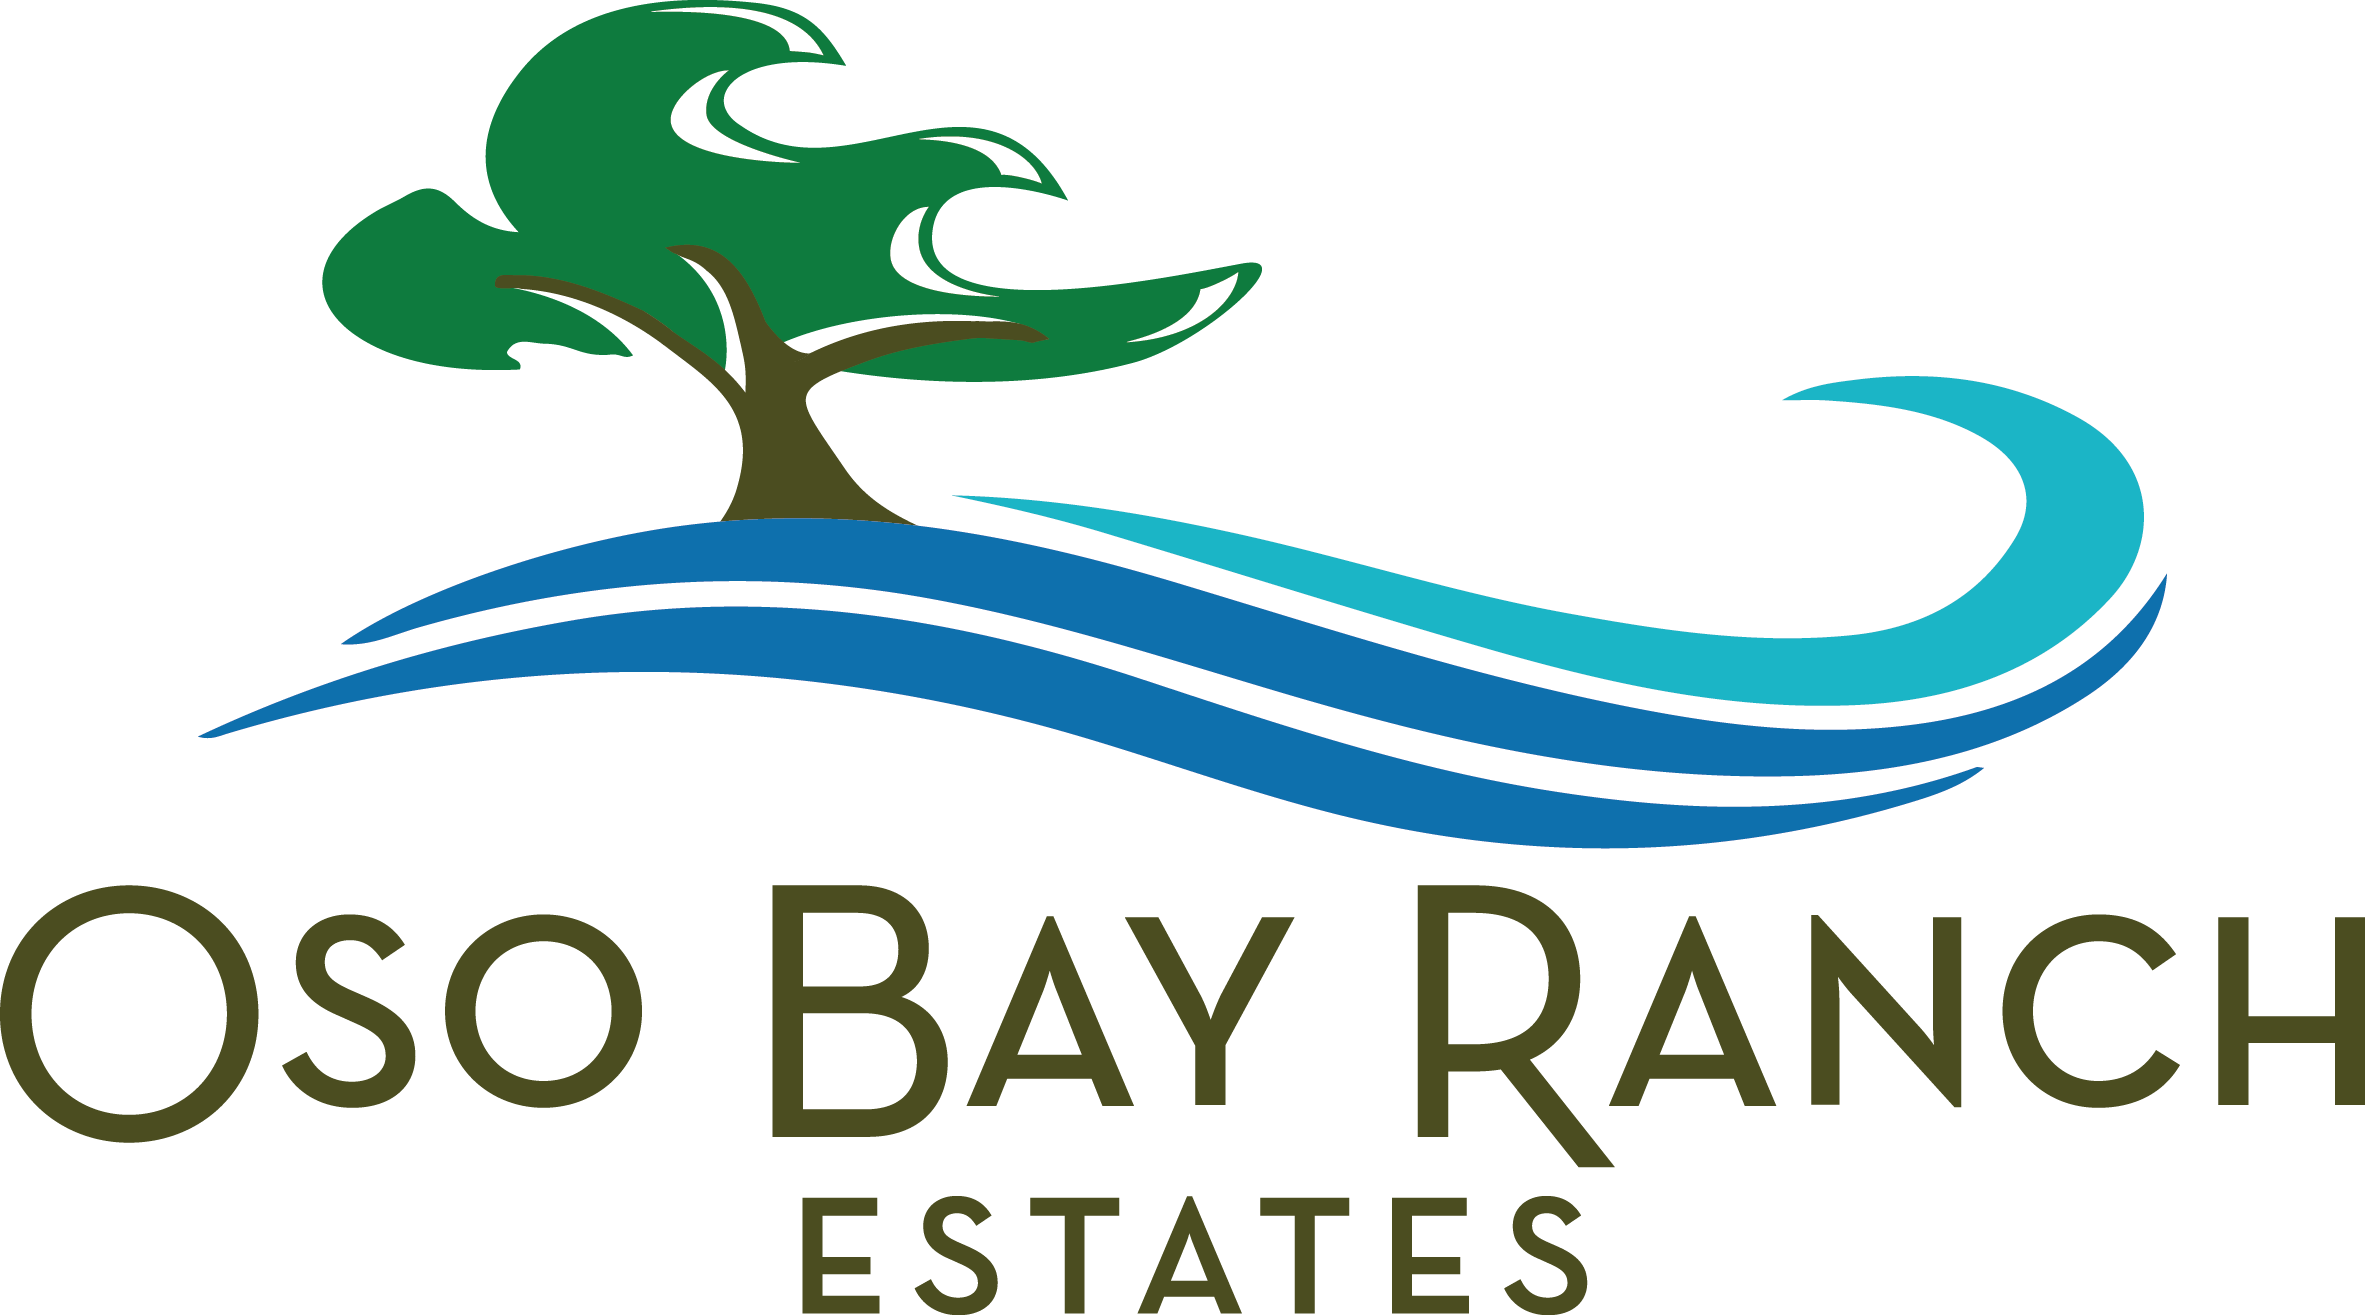 Oso Bay Ranch Estates Logo (1).png